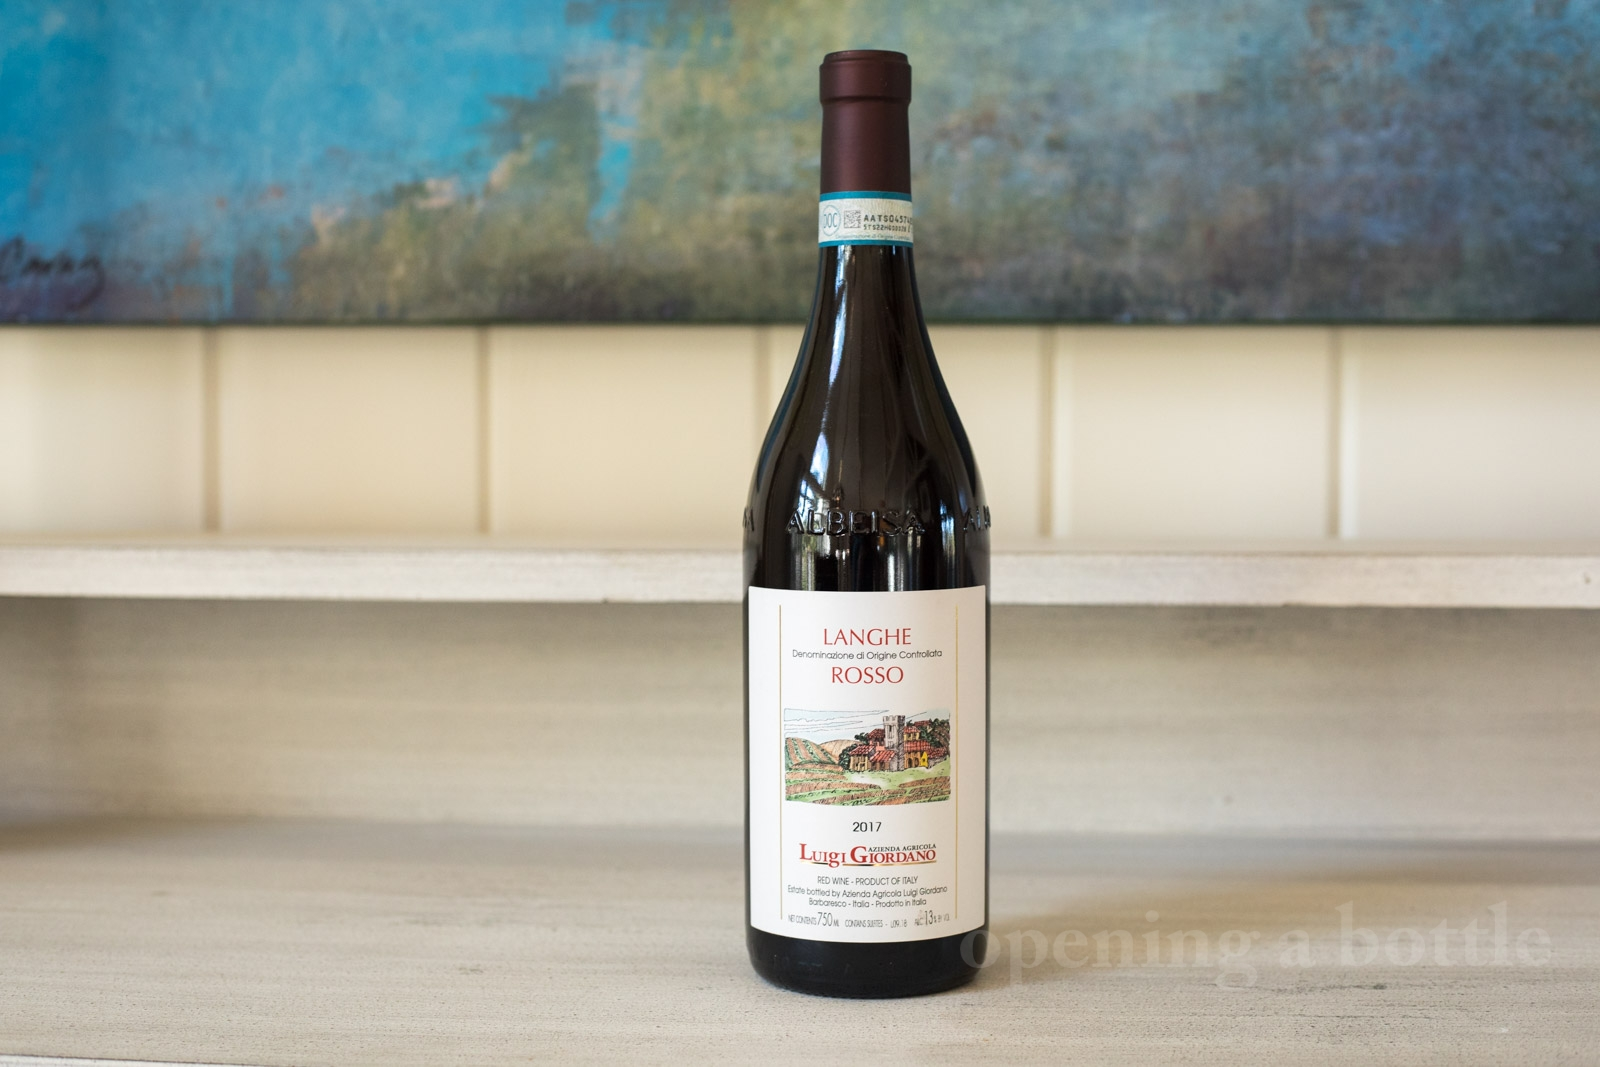 2017 Luigi Giordano Langhe Rosso ©Kevin Day/Opening a Bottle